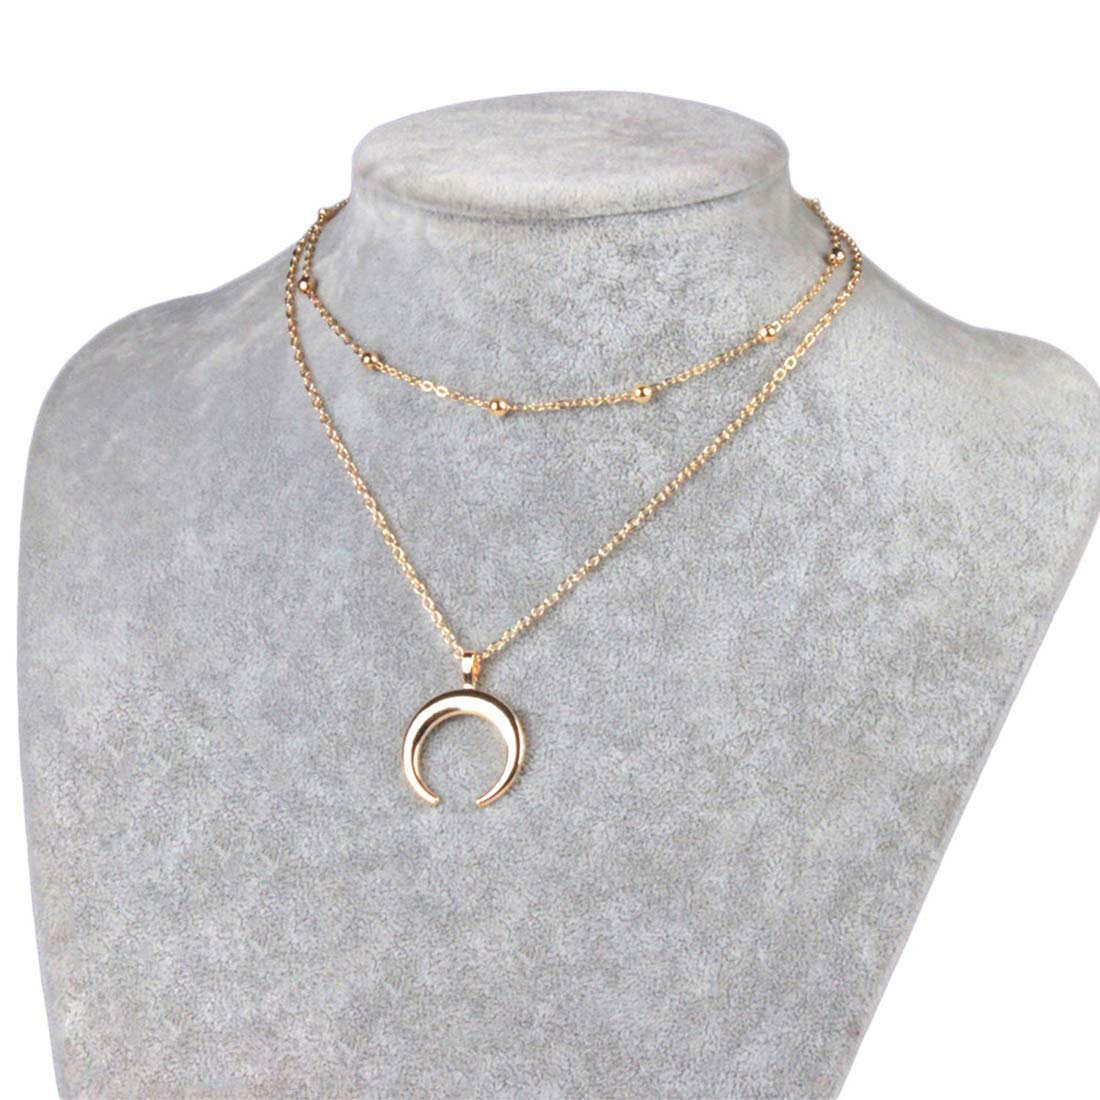 MOCANALA Moon Layered Necklace, Gold Horn Pendant Crescent Moon Pendant Chain Necklace Multilayer Beaded Ball Chain Choker Necklace for Women (Moon Pendant)